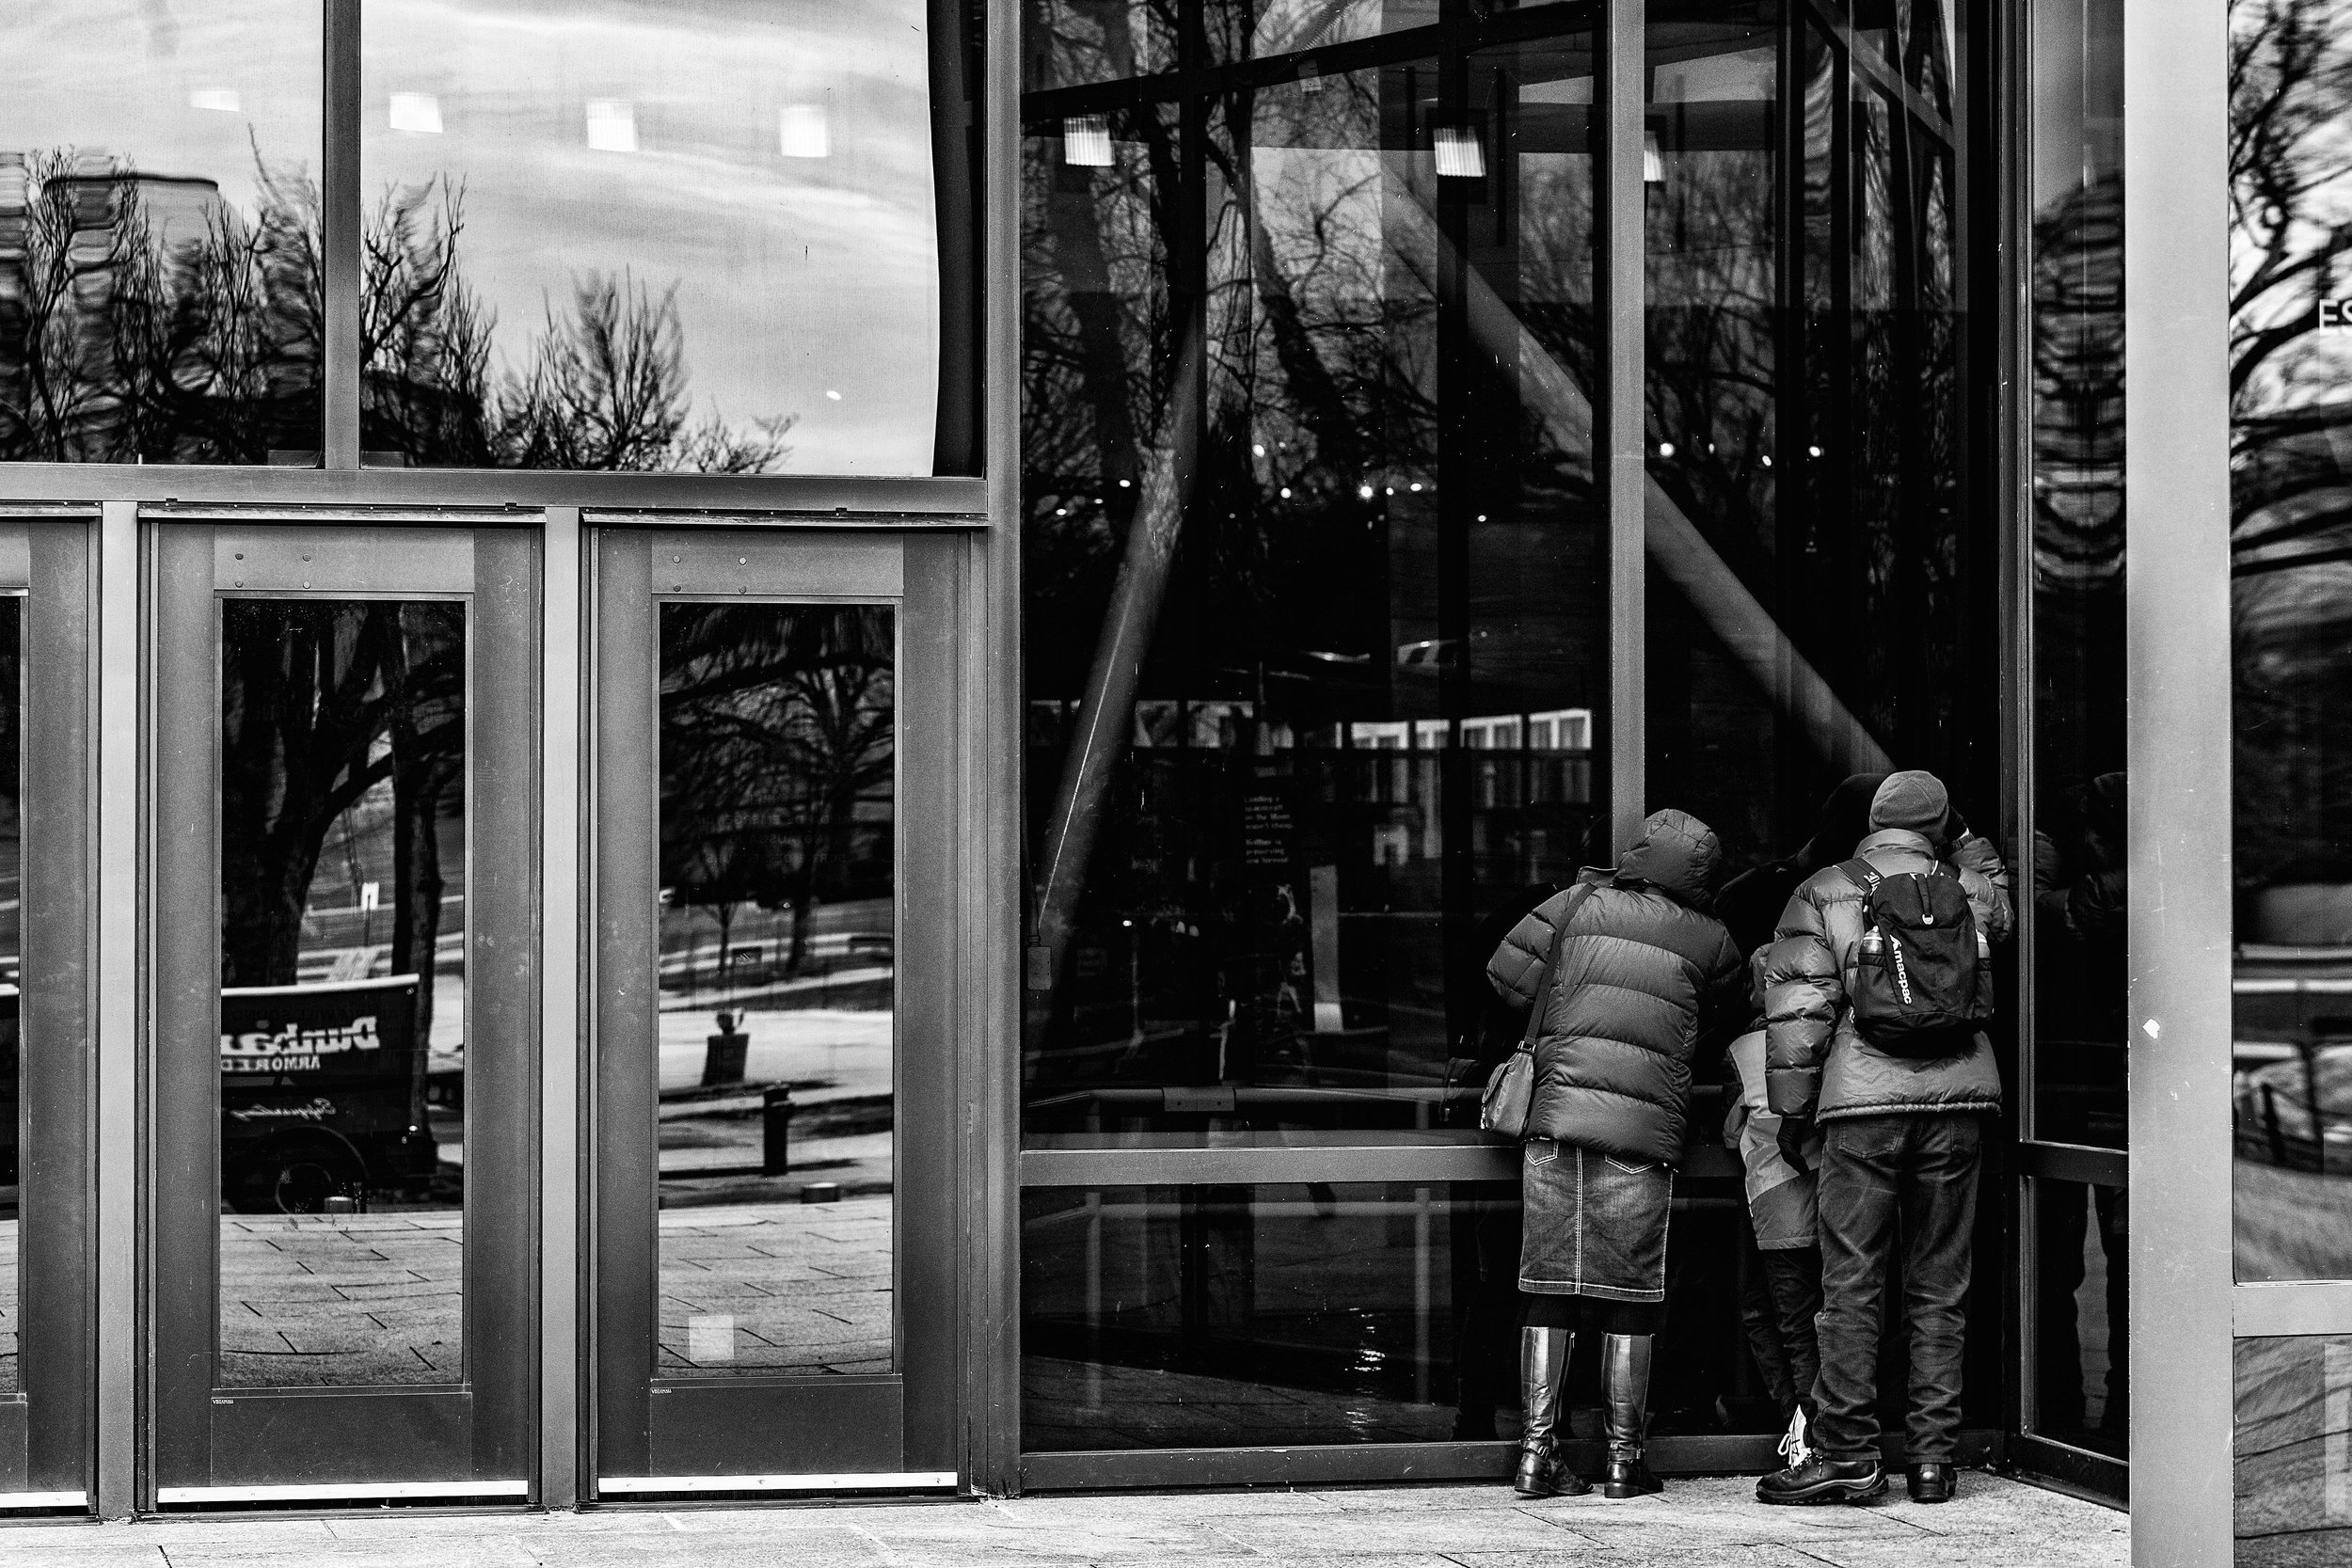 Day 718: Tourists from Australia look into the window of the National Air and Space Museum in Washington, DC, on January 7, 2019. The museum, along with all Smithsonian Museums is closed due to the government shutdown.